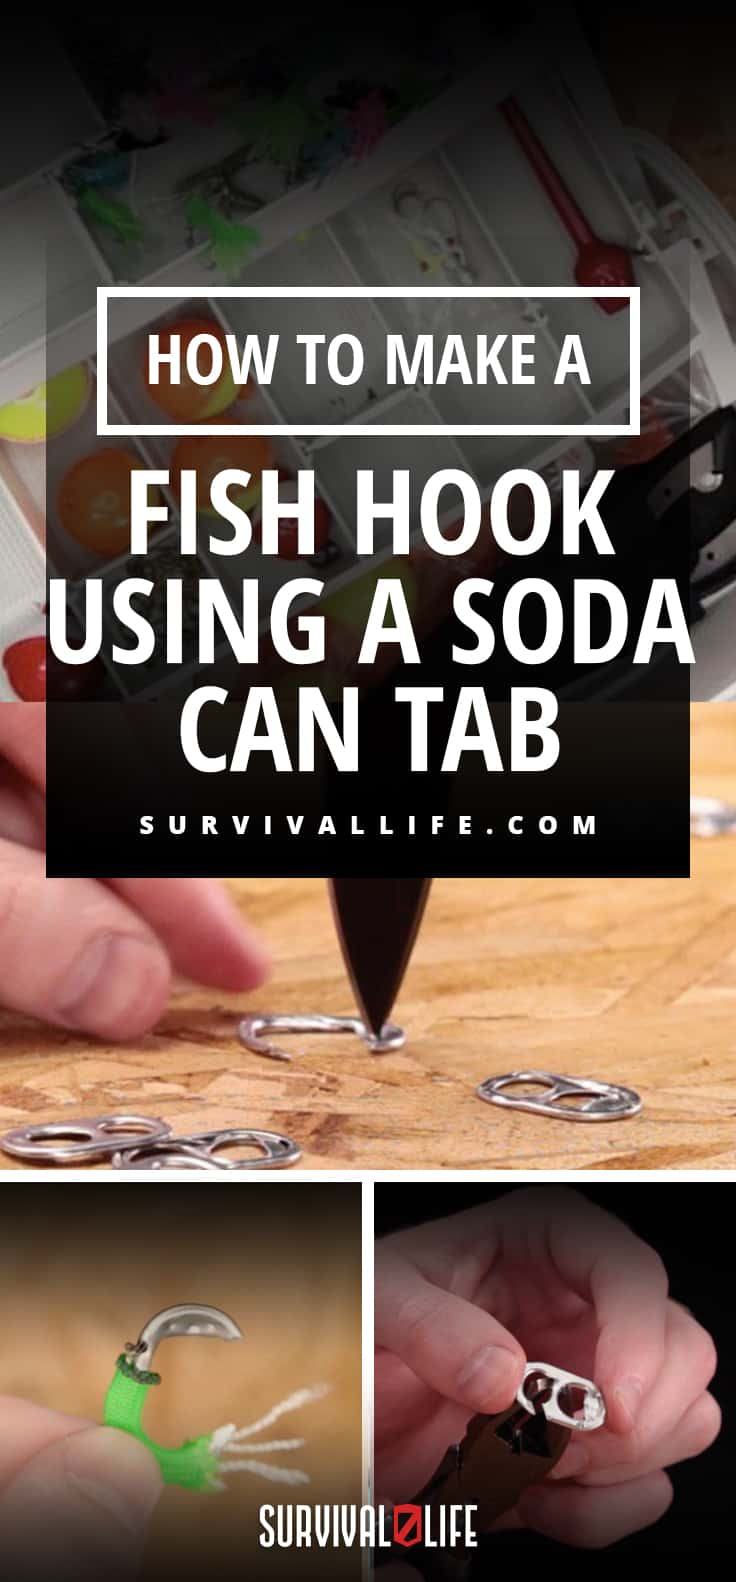 How to Make a Fish Hook Using a Soda Can Tab